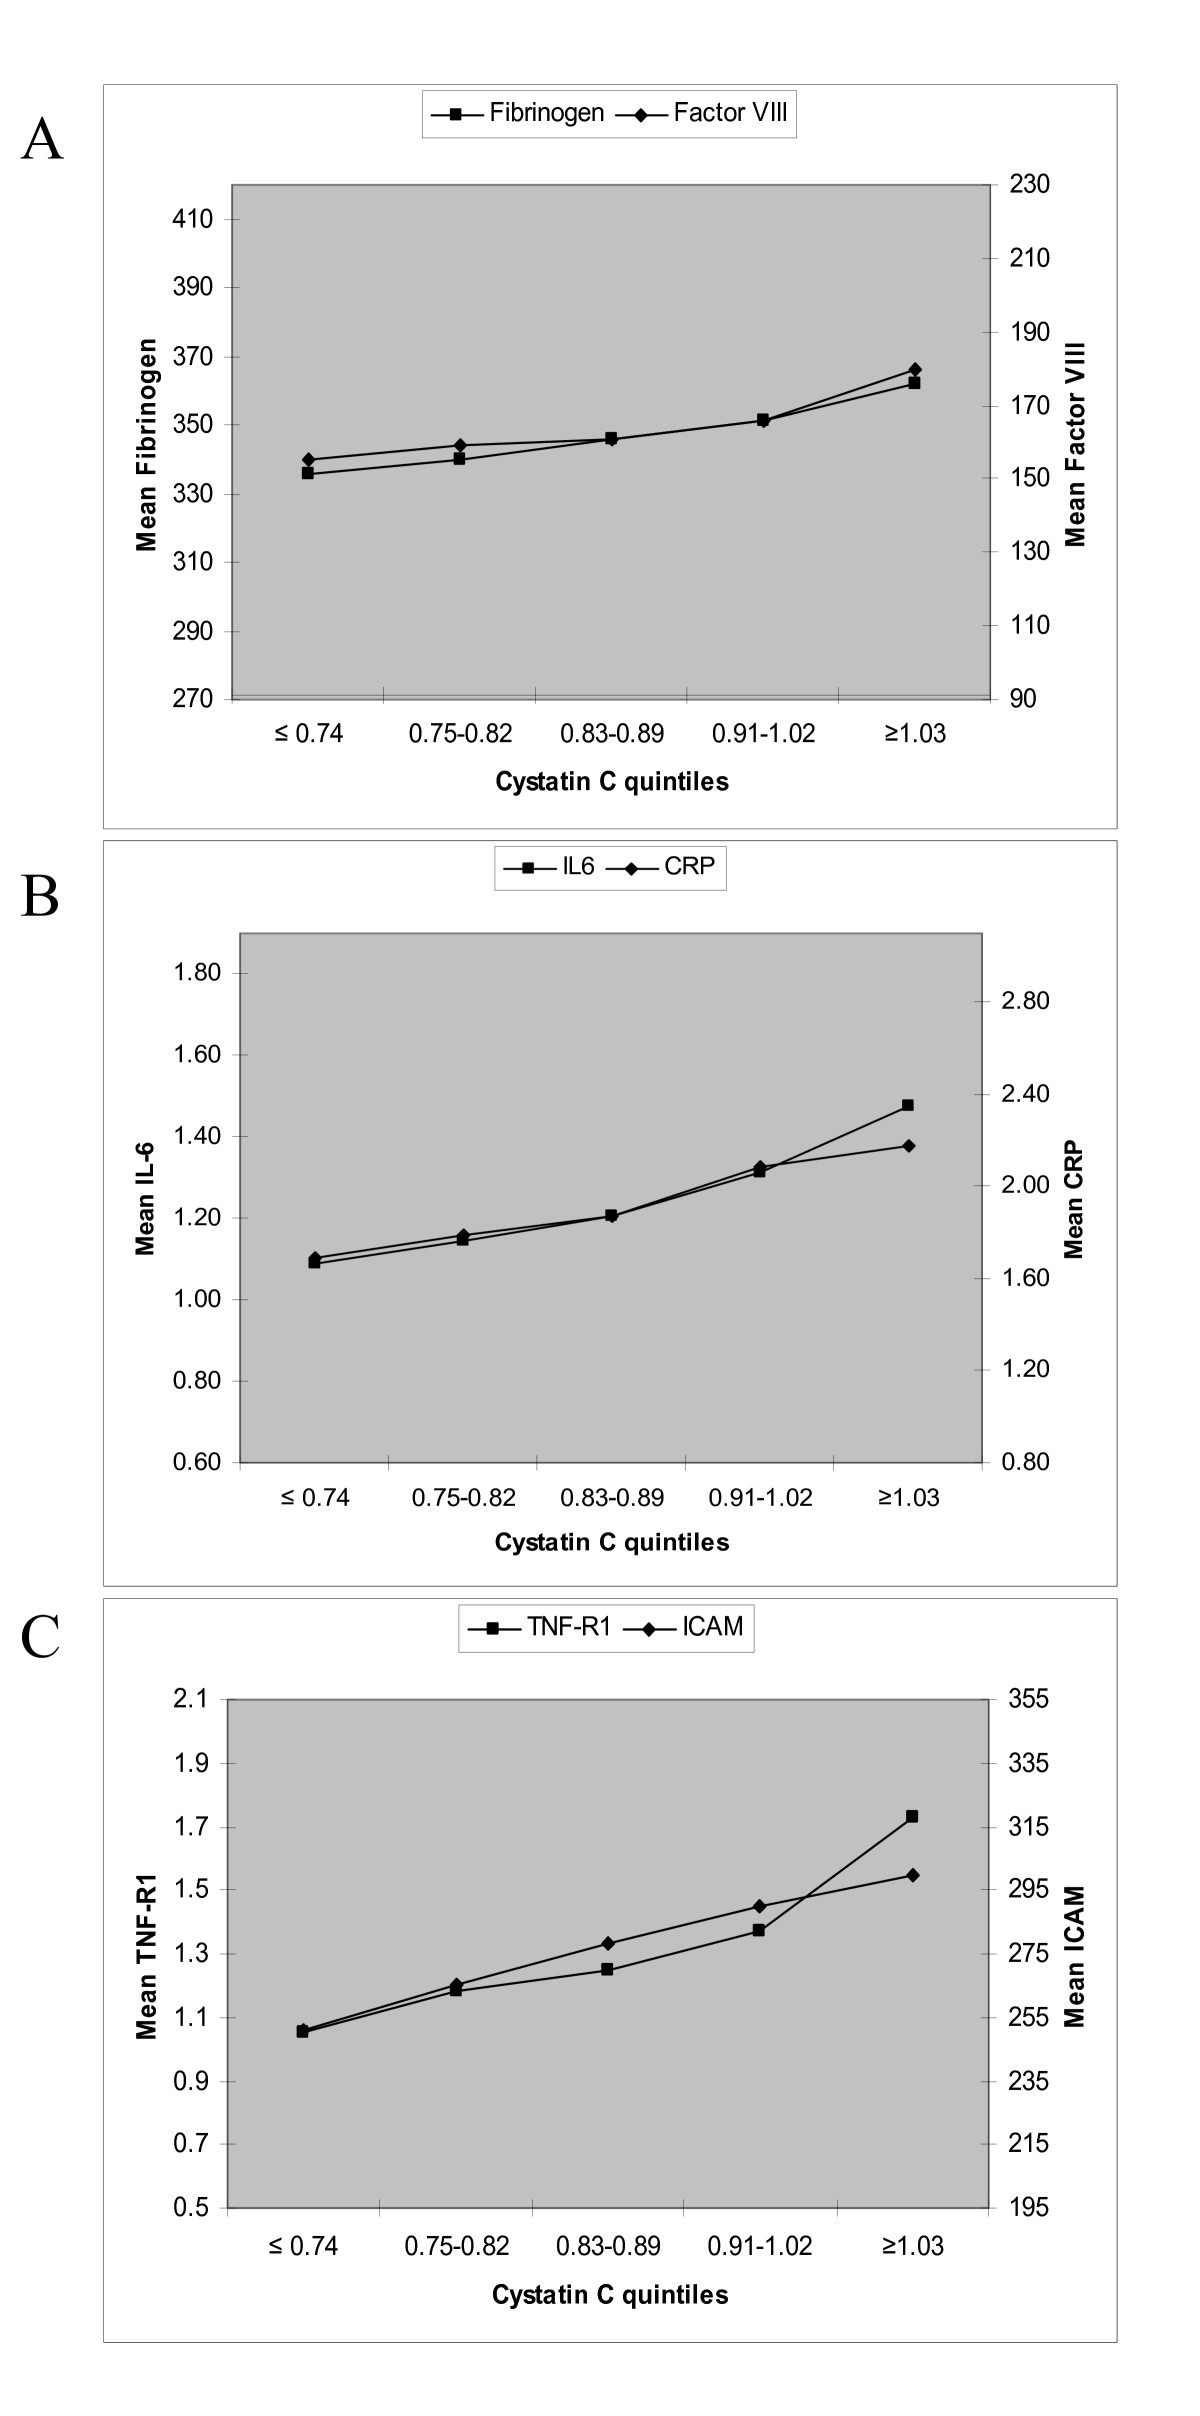 https://static-content.springer.com/image/art%3A10.1186%2F1471-2369-9-9/MediaObjects/12882_2008_Article_100_Fig1_HTML.jpg